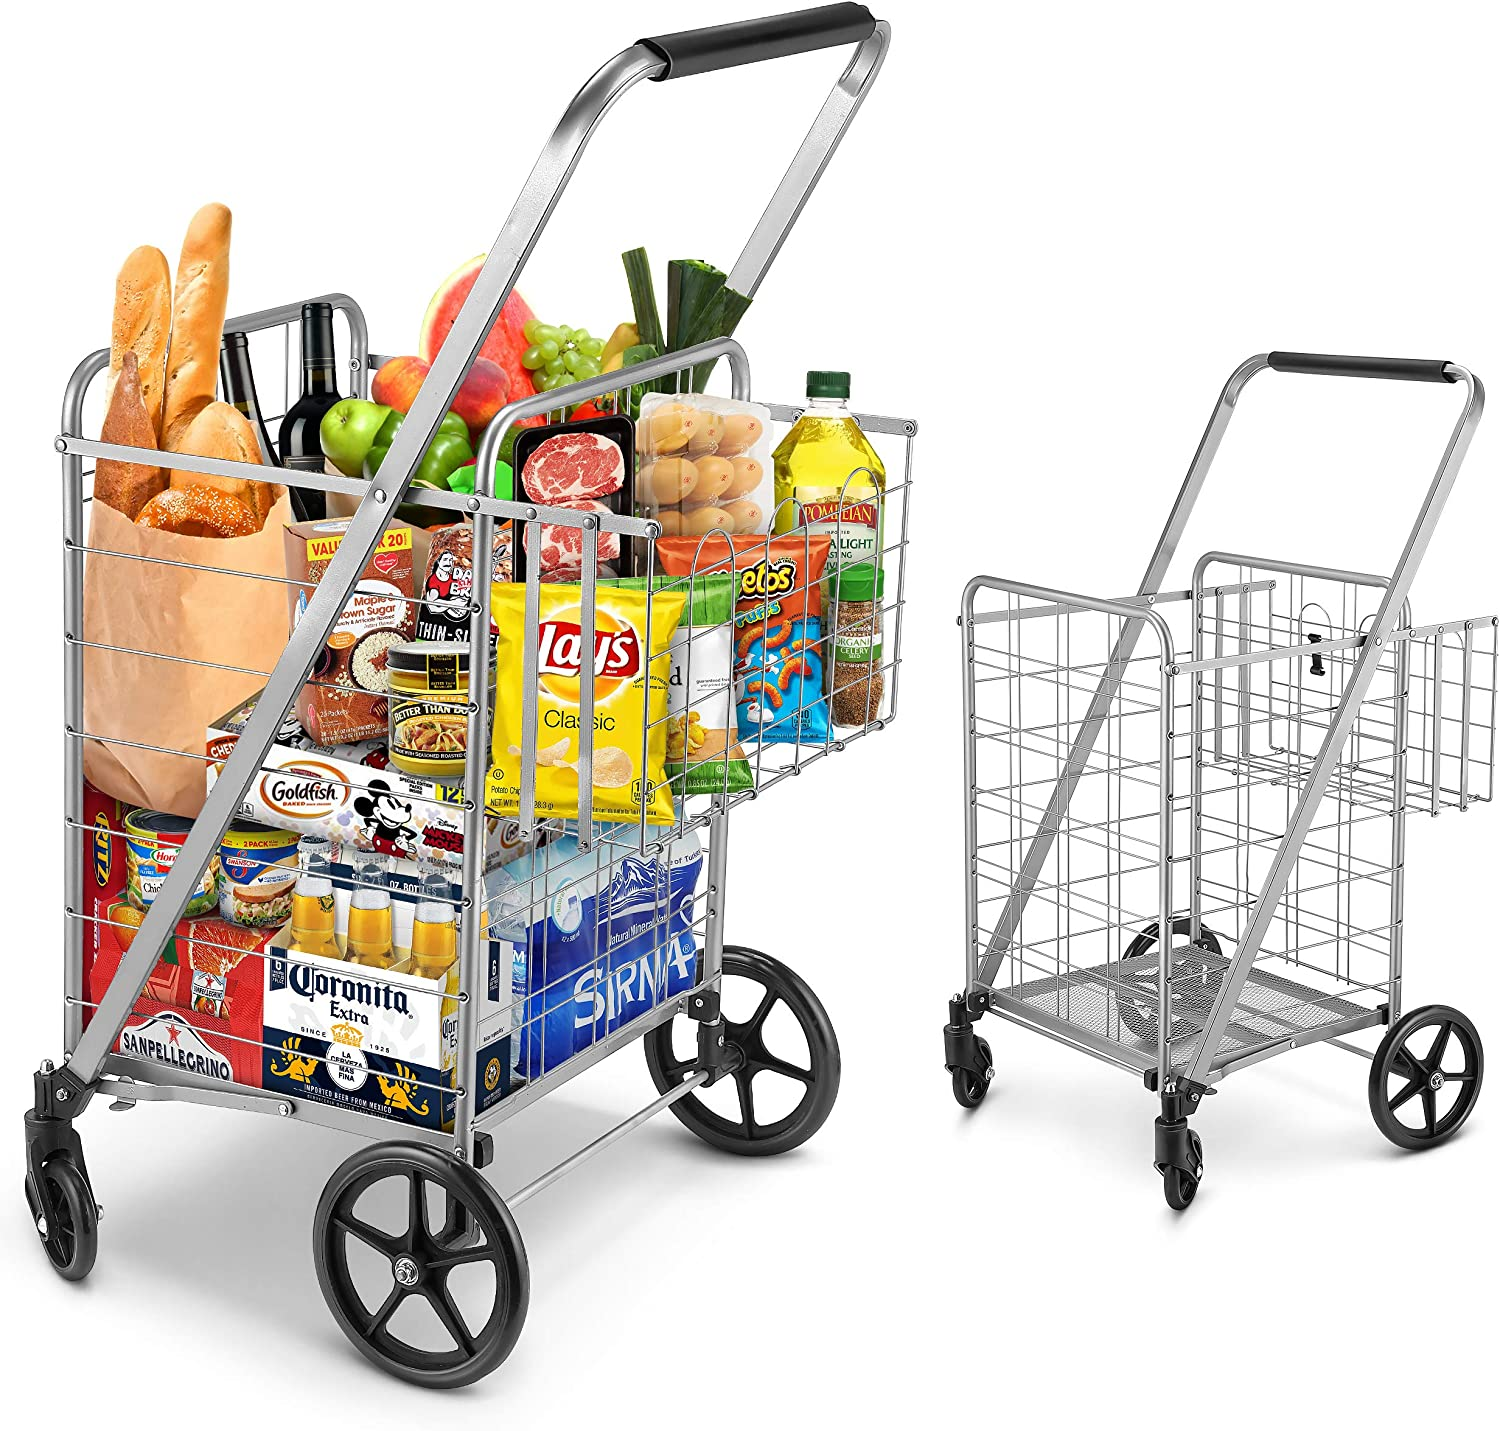 Shopping Cart Jumbo Double Basket Grocery Cart 330 Lbs Capacity Folding Shopping Cart With 360 Rolling Swivel Wheels Super Loading Utility Shopping Cart For Laundry Shopping Grocery Luggage Amazon Co Uk Office Products